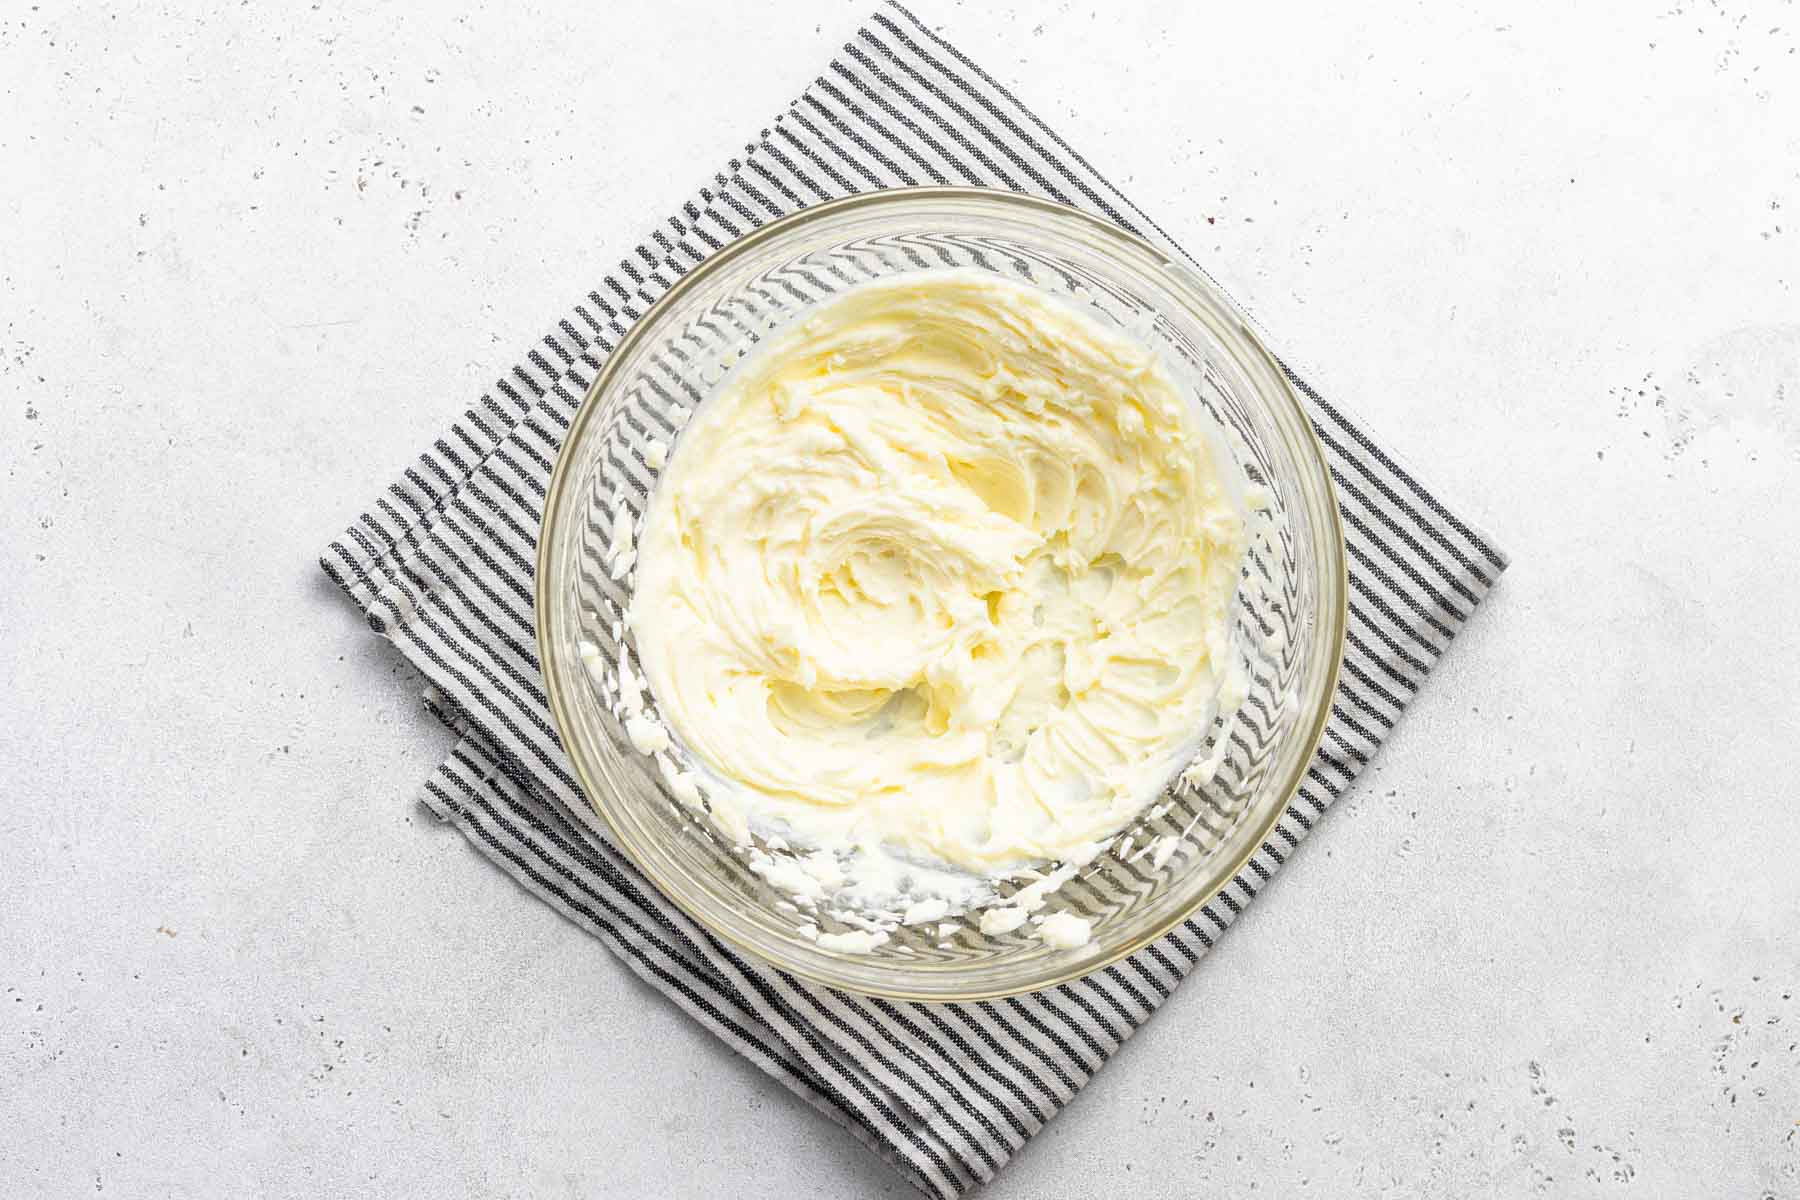 Lemon cream cheese frosting in clear bowl.